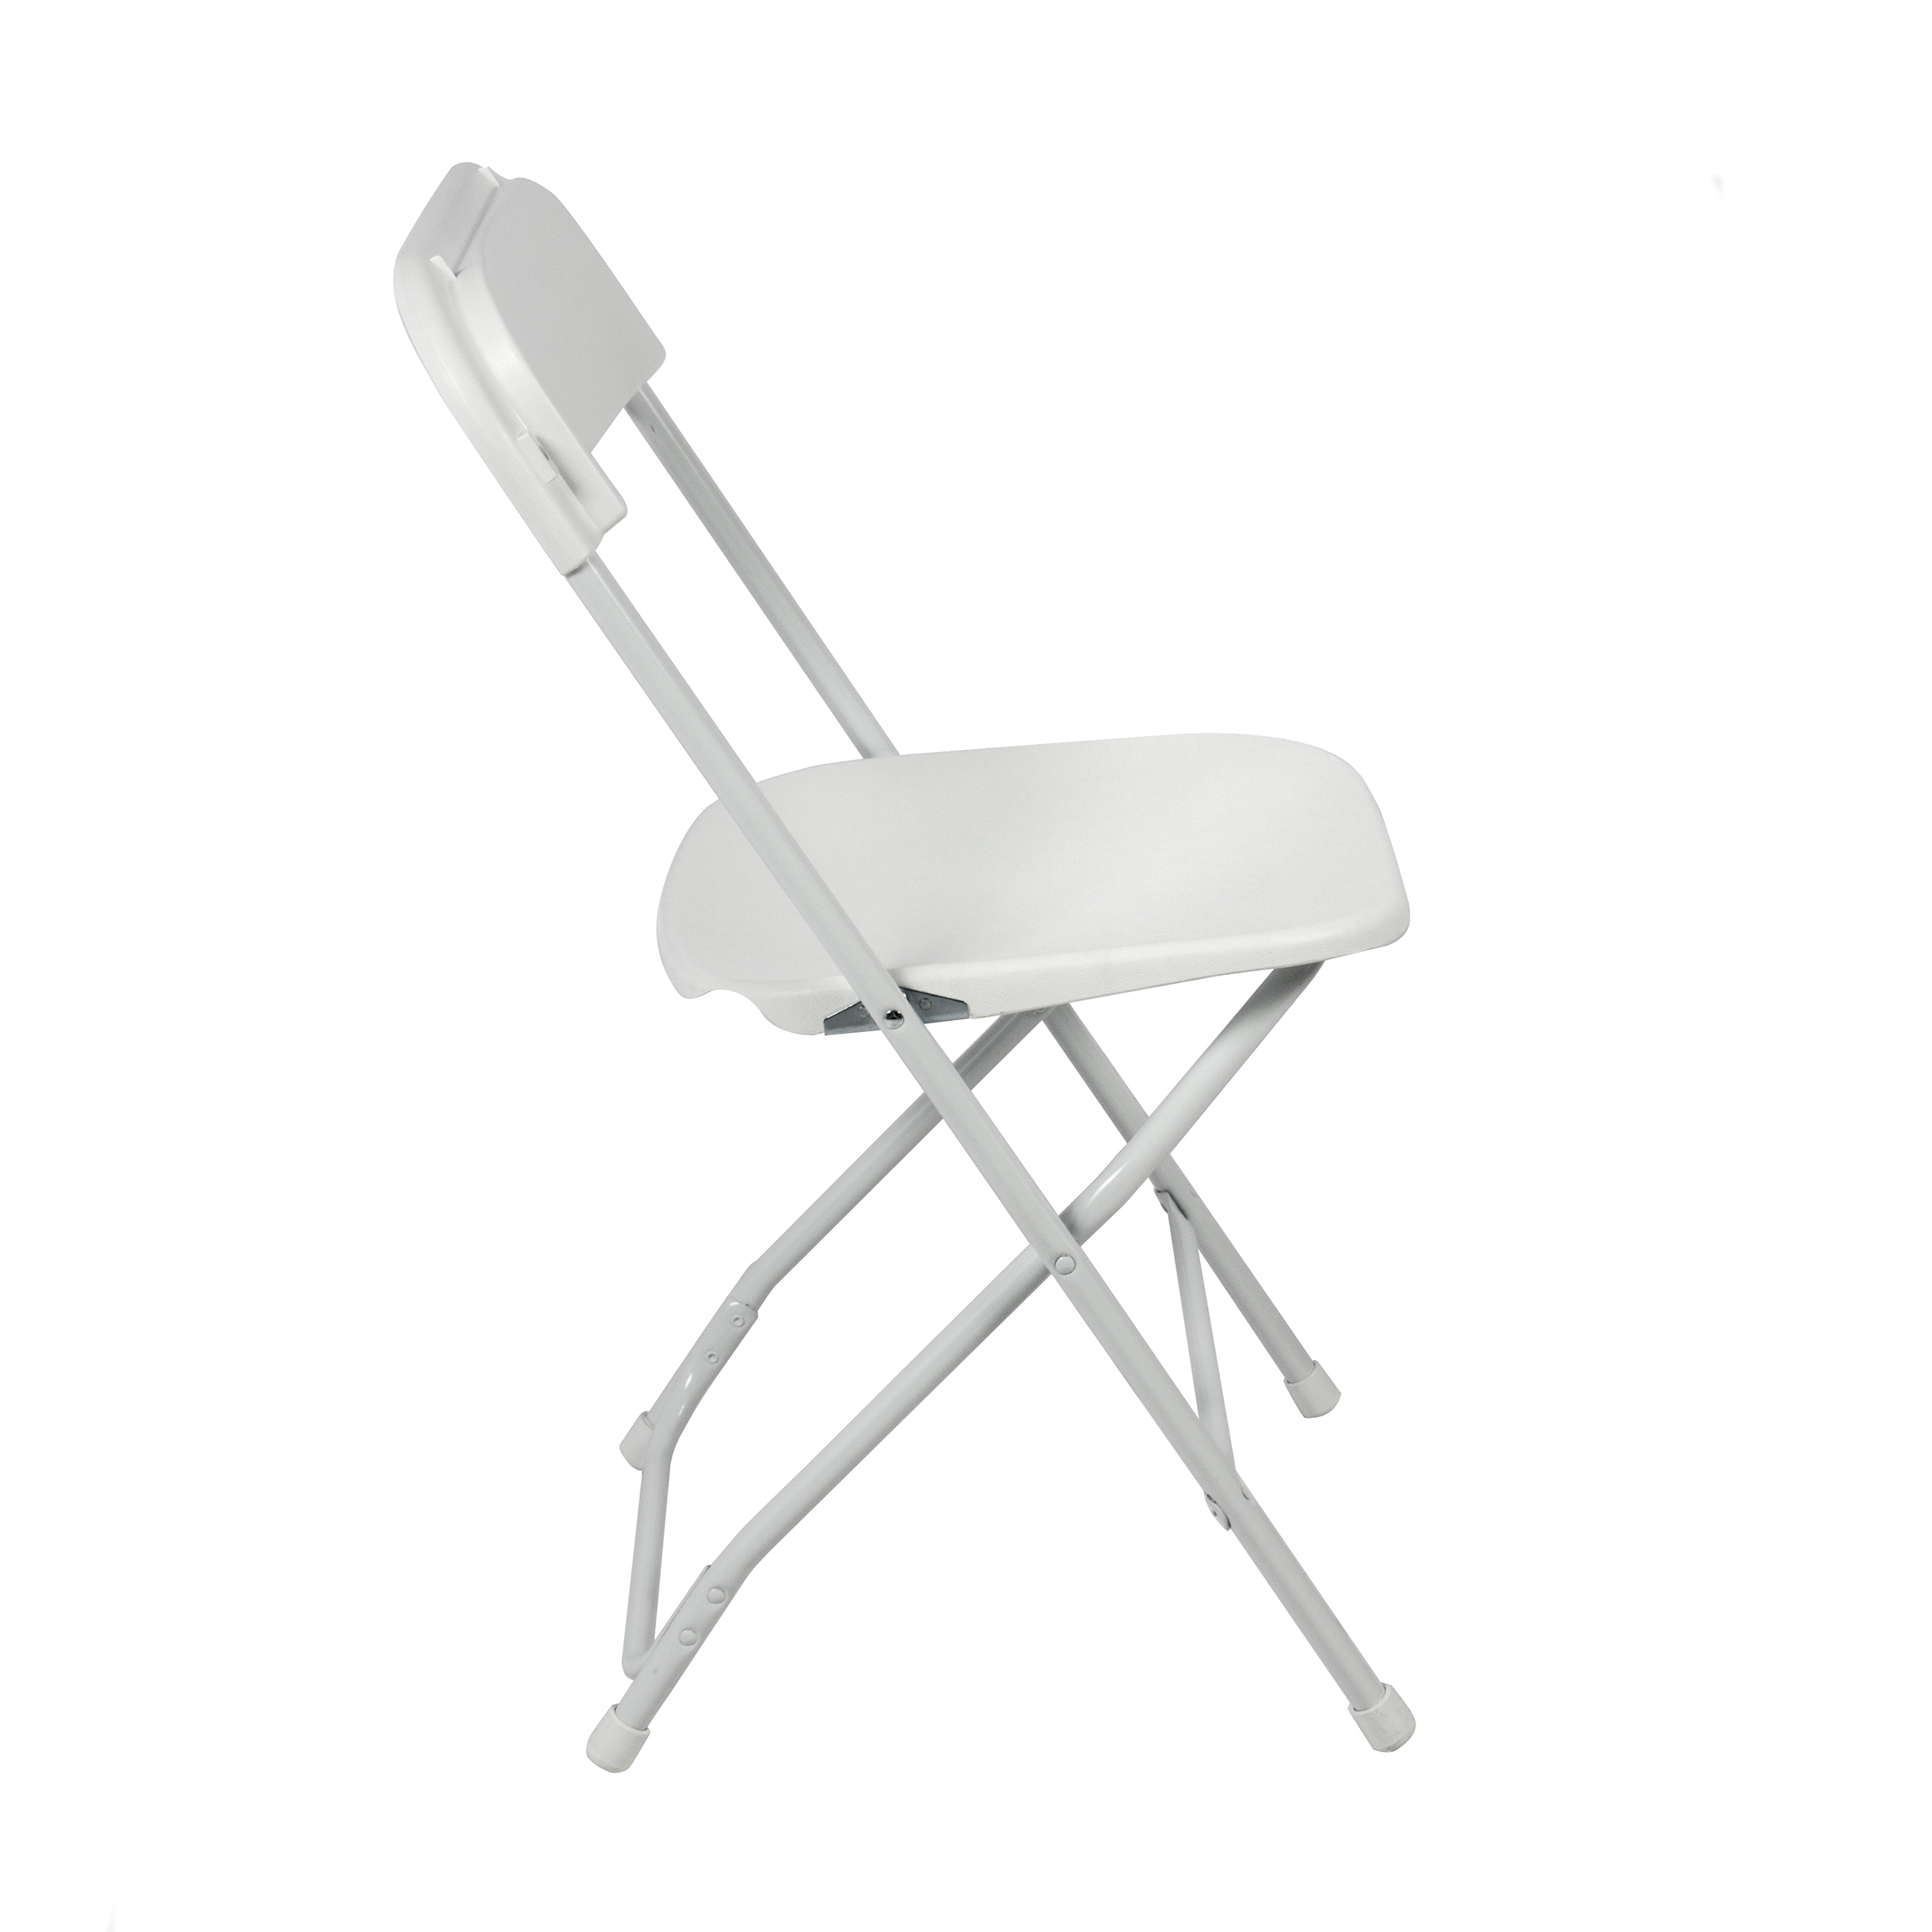 White Stackable Chairs 5 Commercial White Plastic Folding Chairs Stackable Wedding Party Event Chair